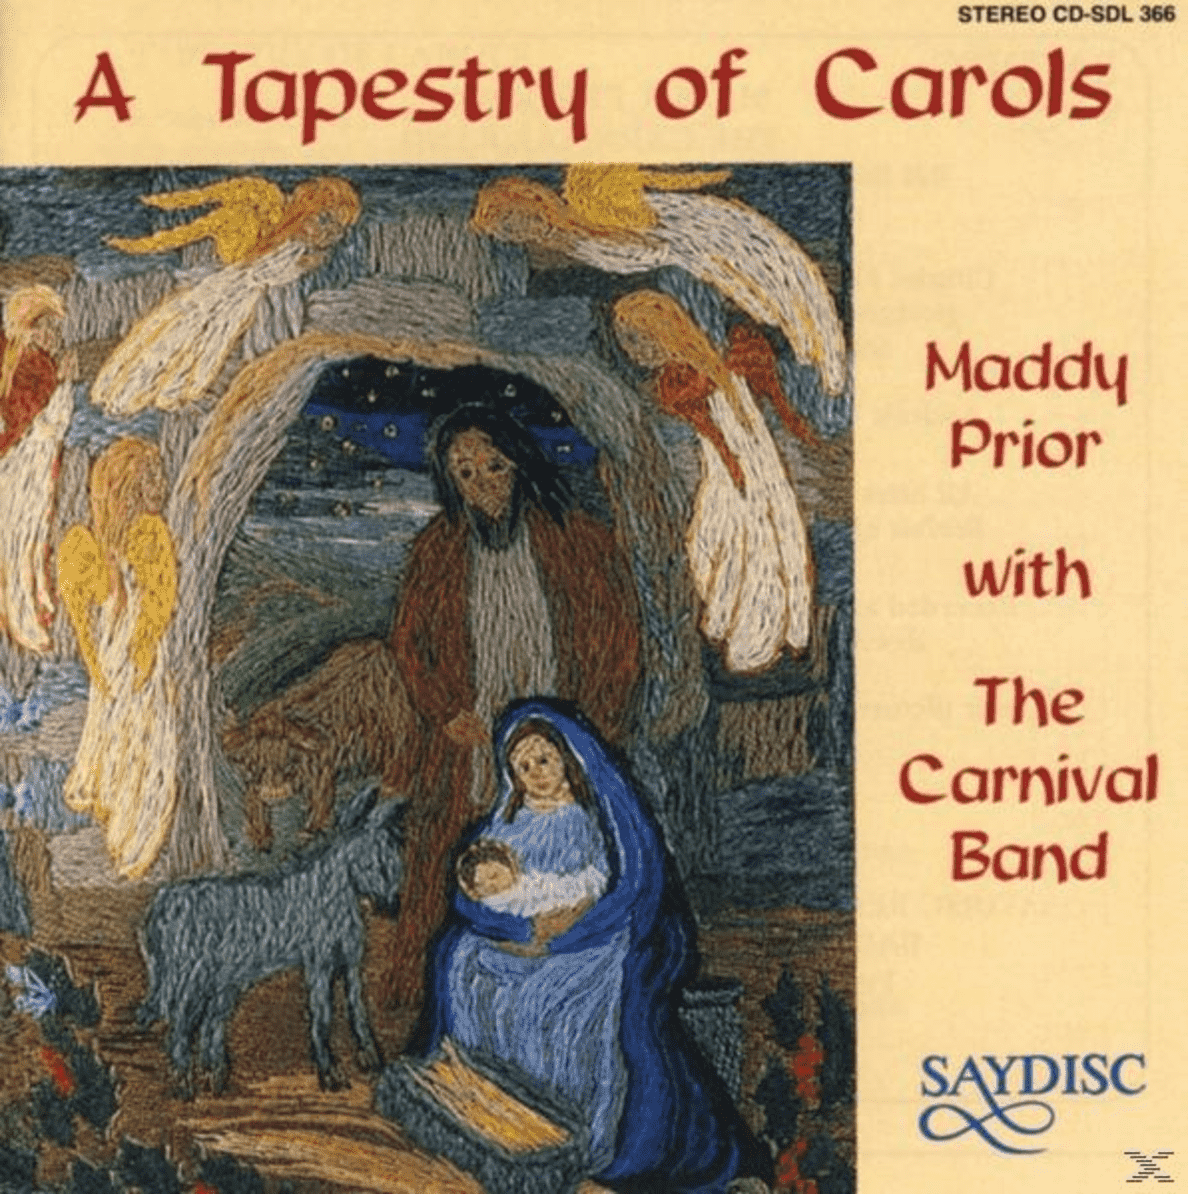 Maddy Prior With The Carnival Band - A Tapestry of Carols - (CD)